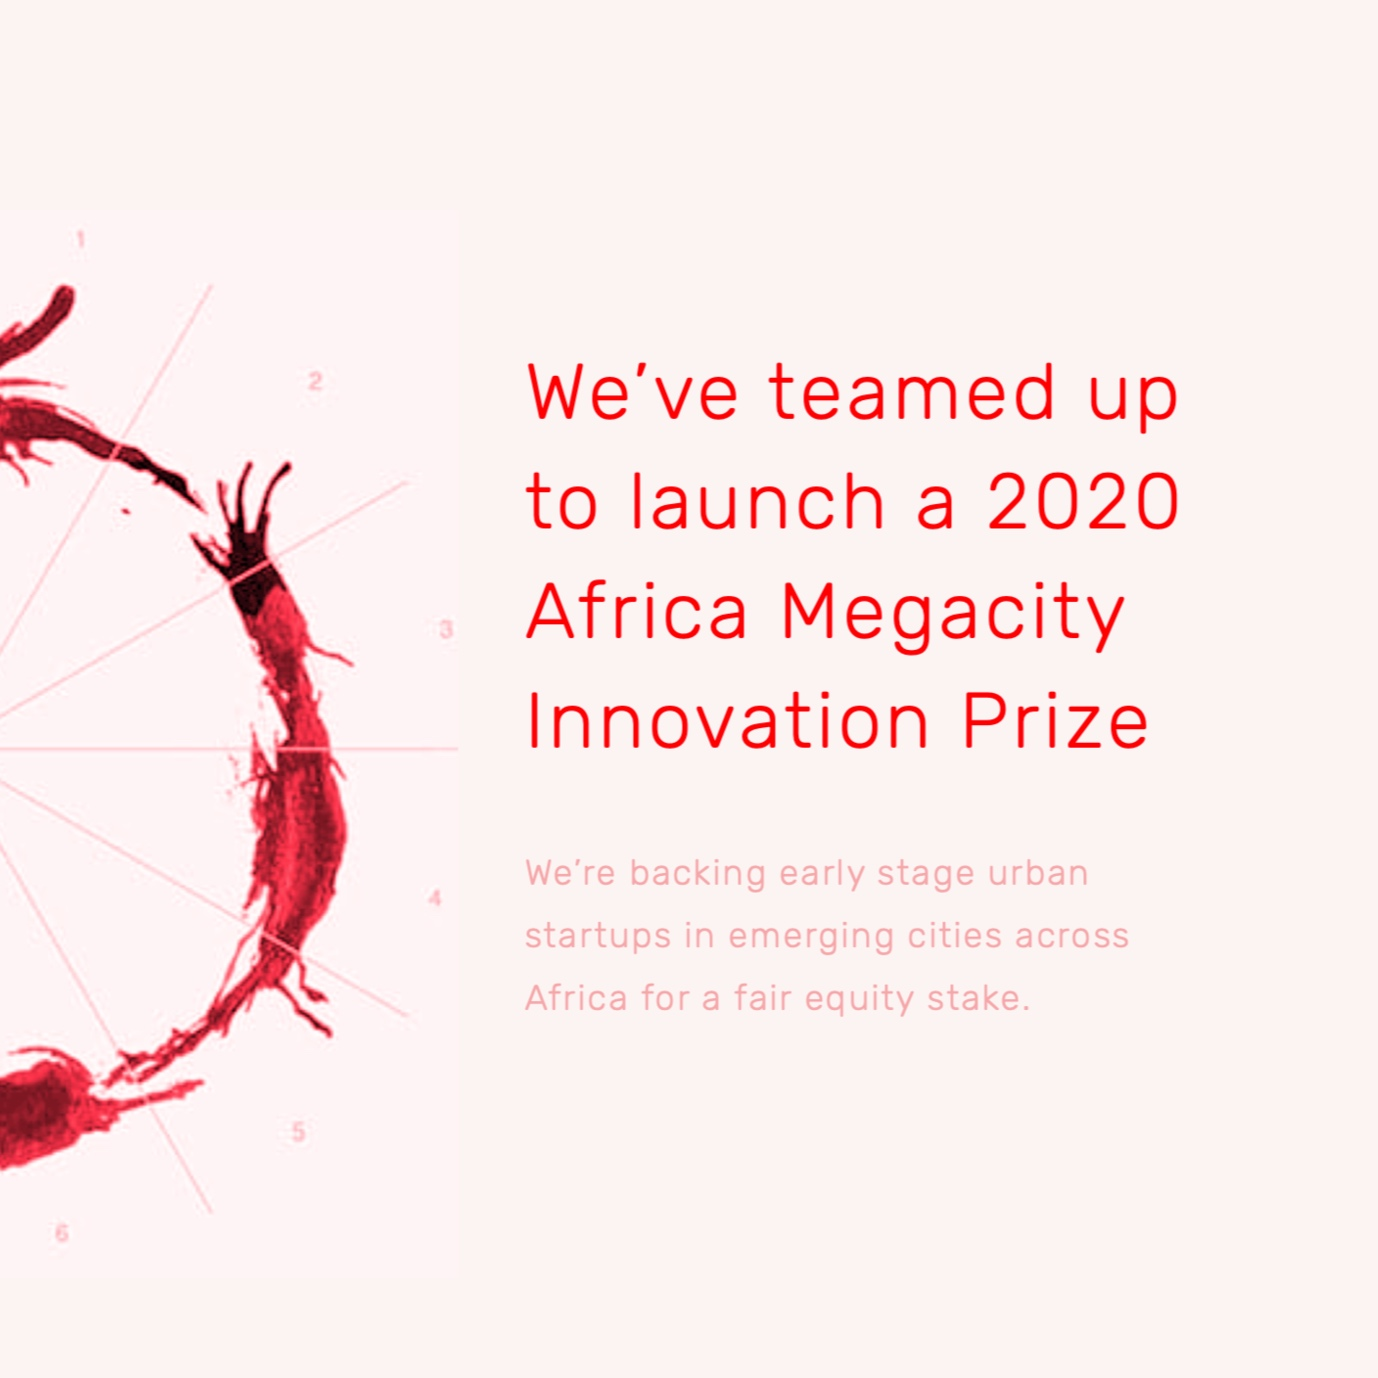 Utopia and Future Africa team up to launch 2020 Africa Megacity Prize -